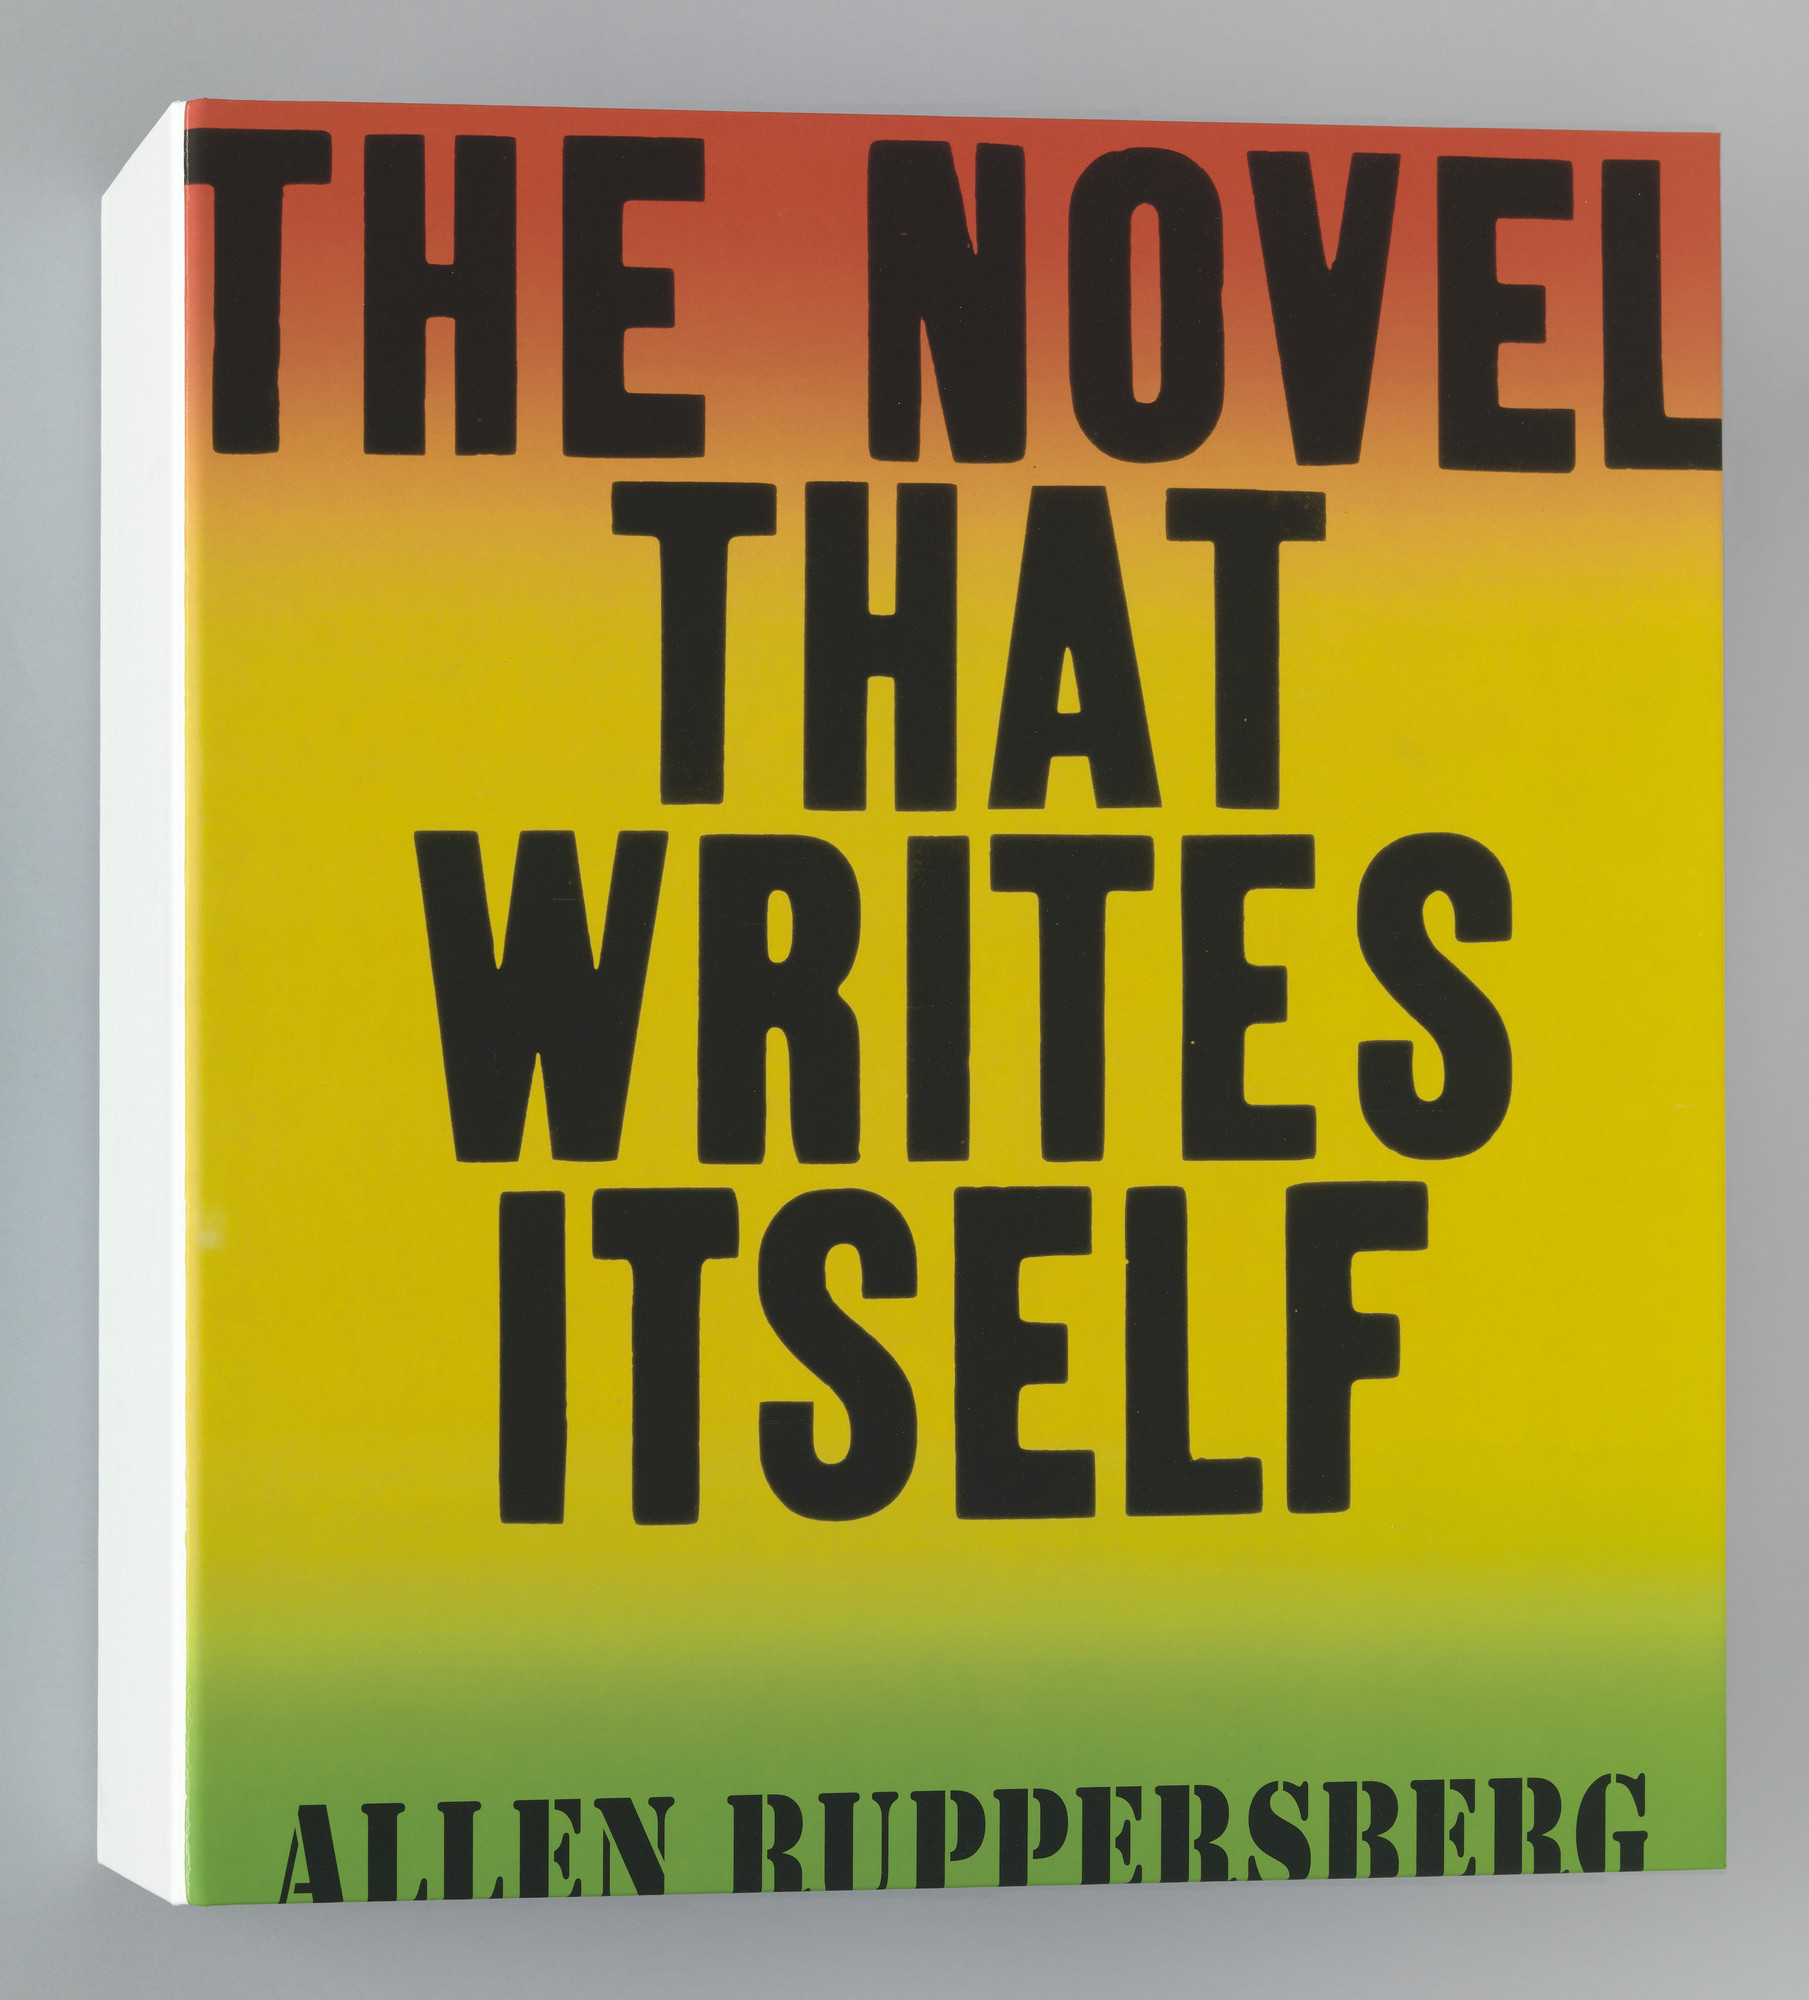 Allen Ruppersberg. The Novel That Writes Itself. 2014